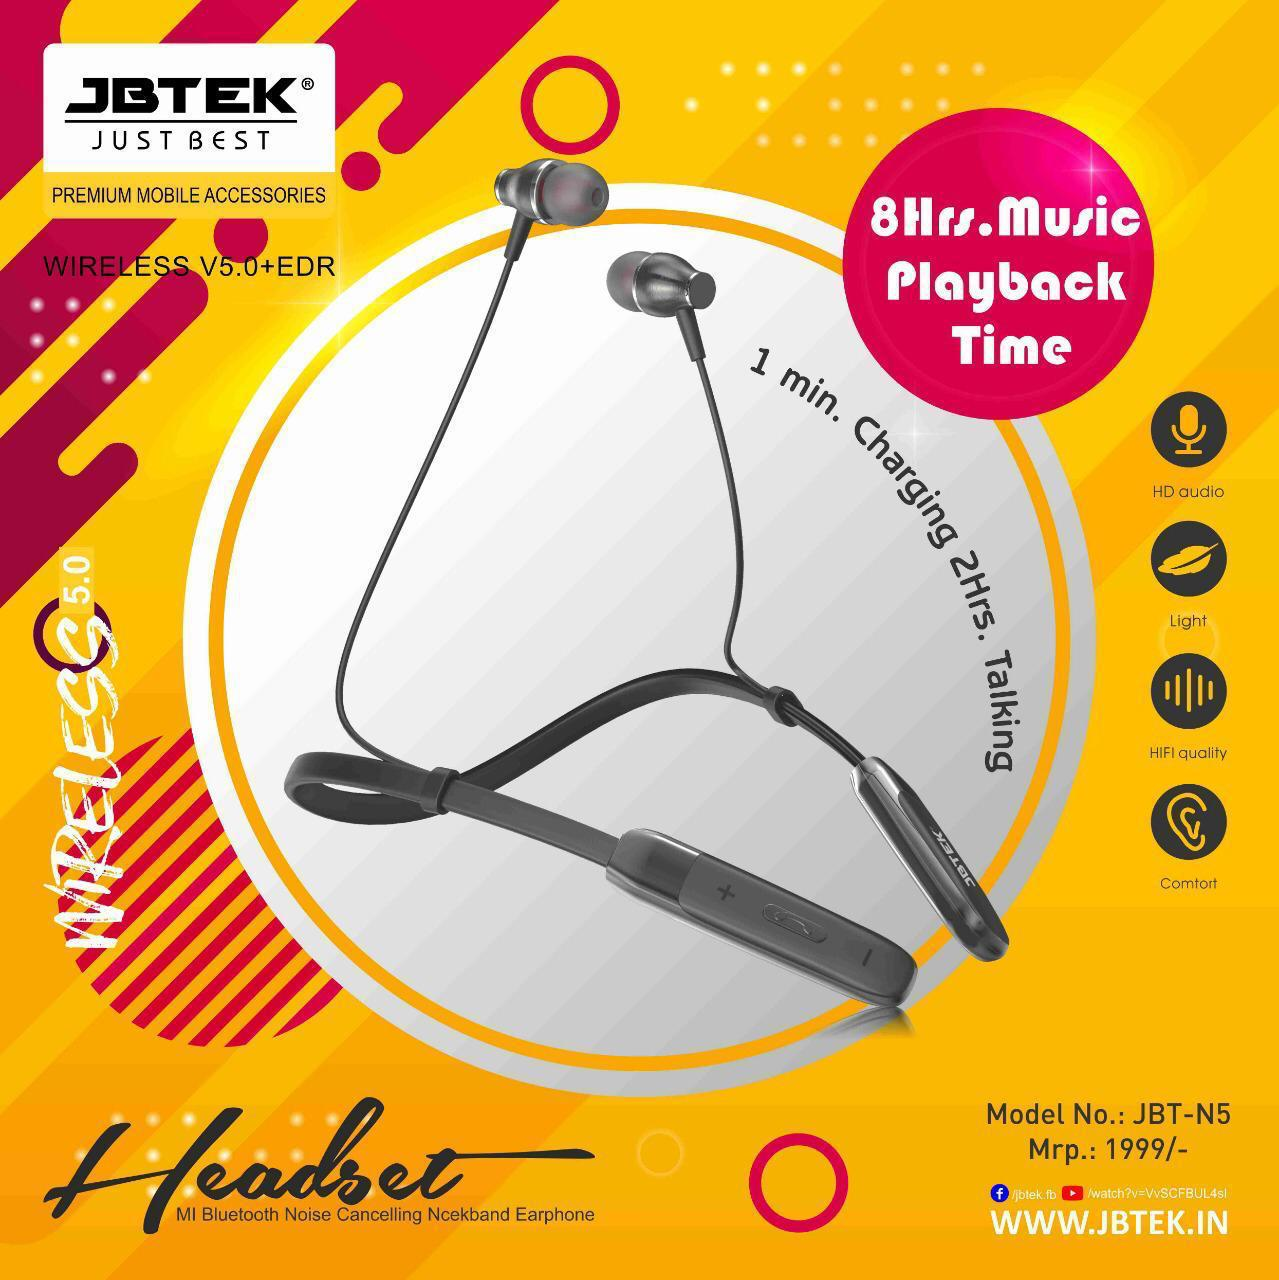 jbtek wireless Headset bluetooth JBT-N5